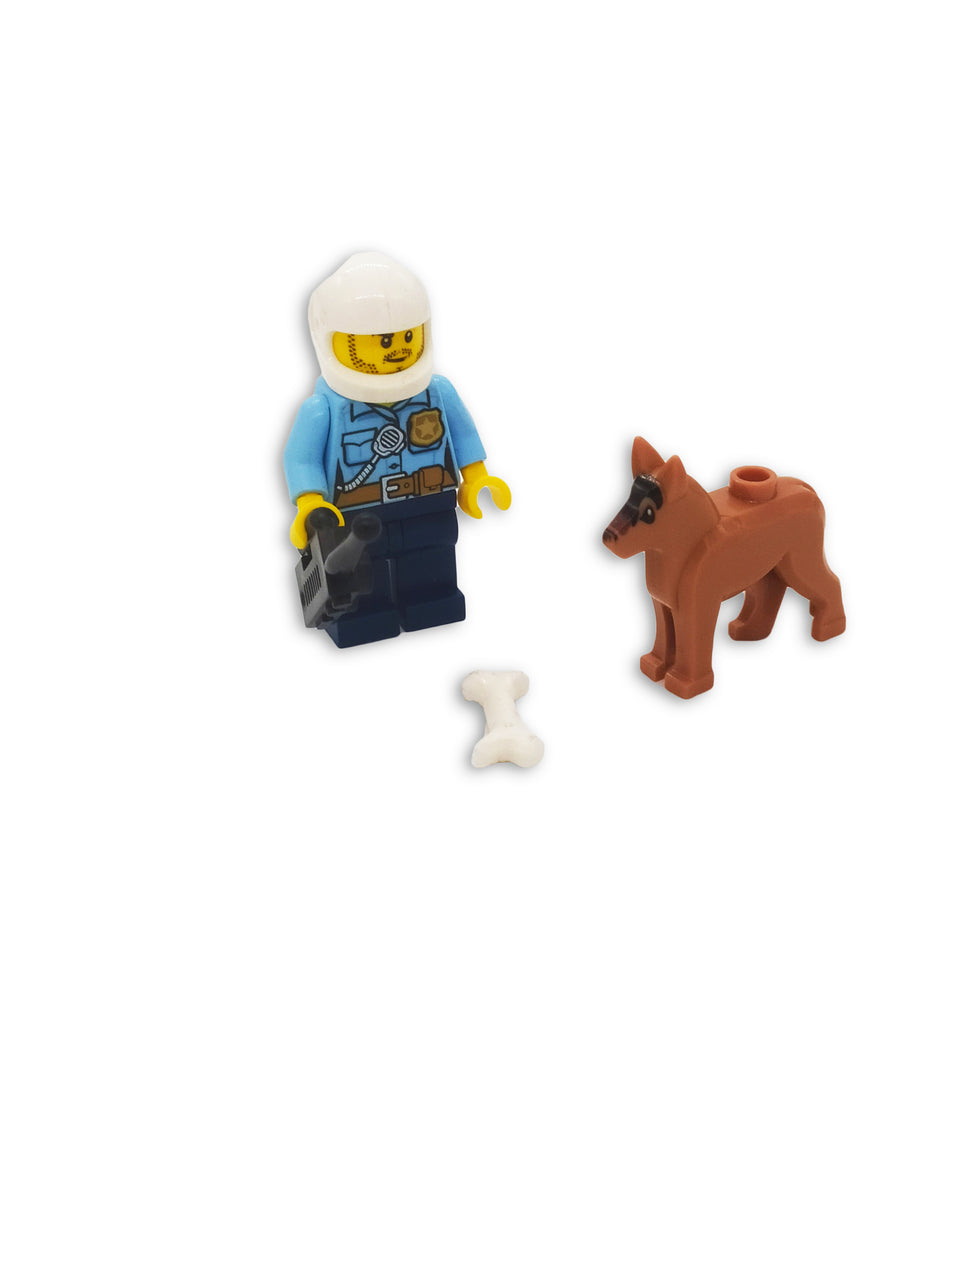 Lego Policeman with Dog and accessories